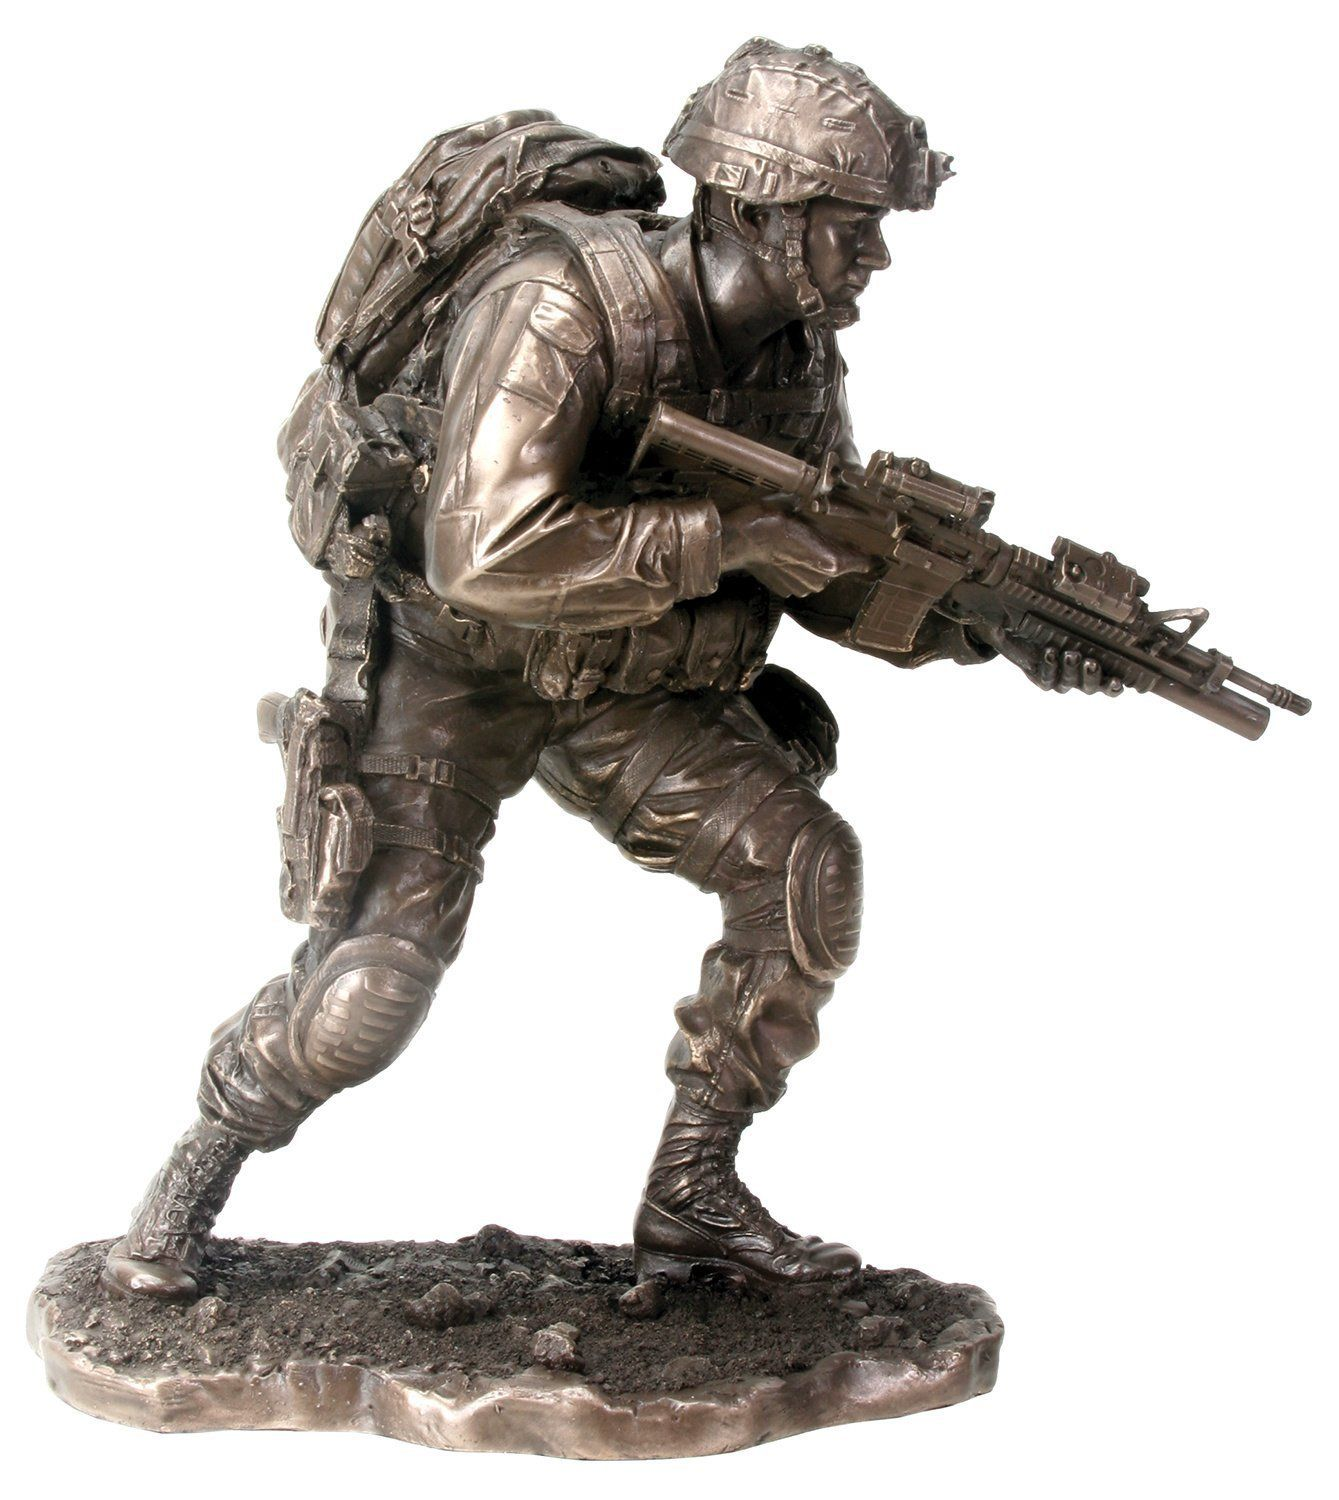 On the move soldier army black ops statue sculpture